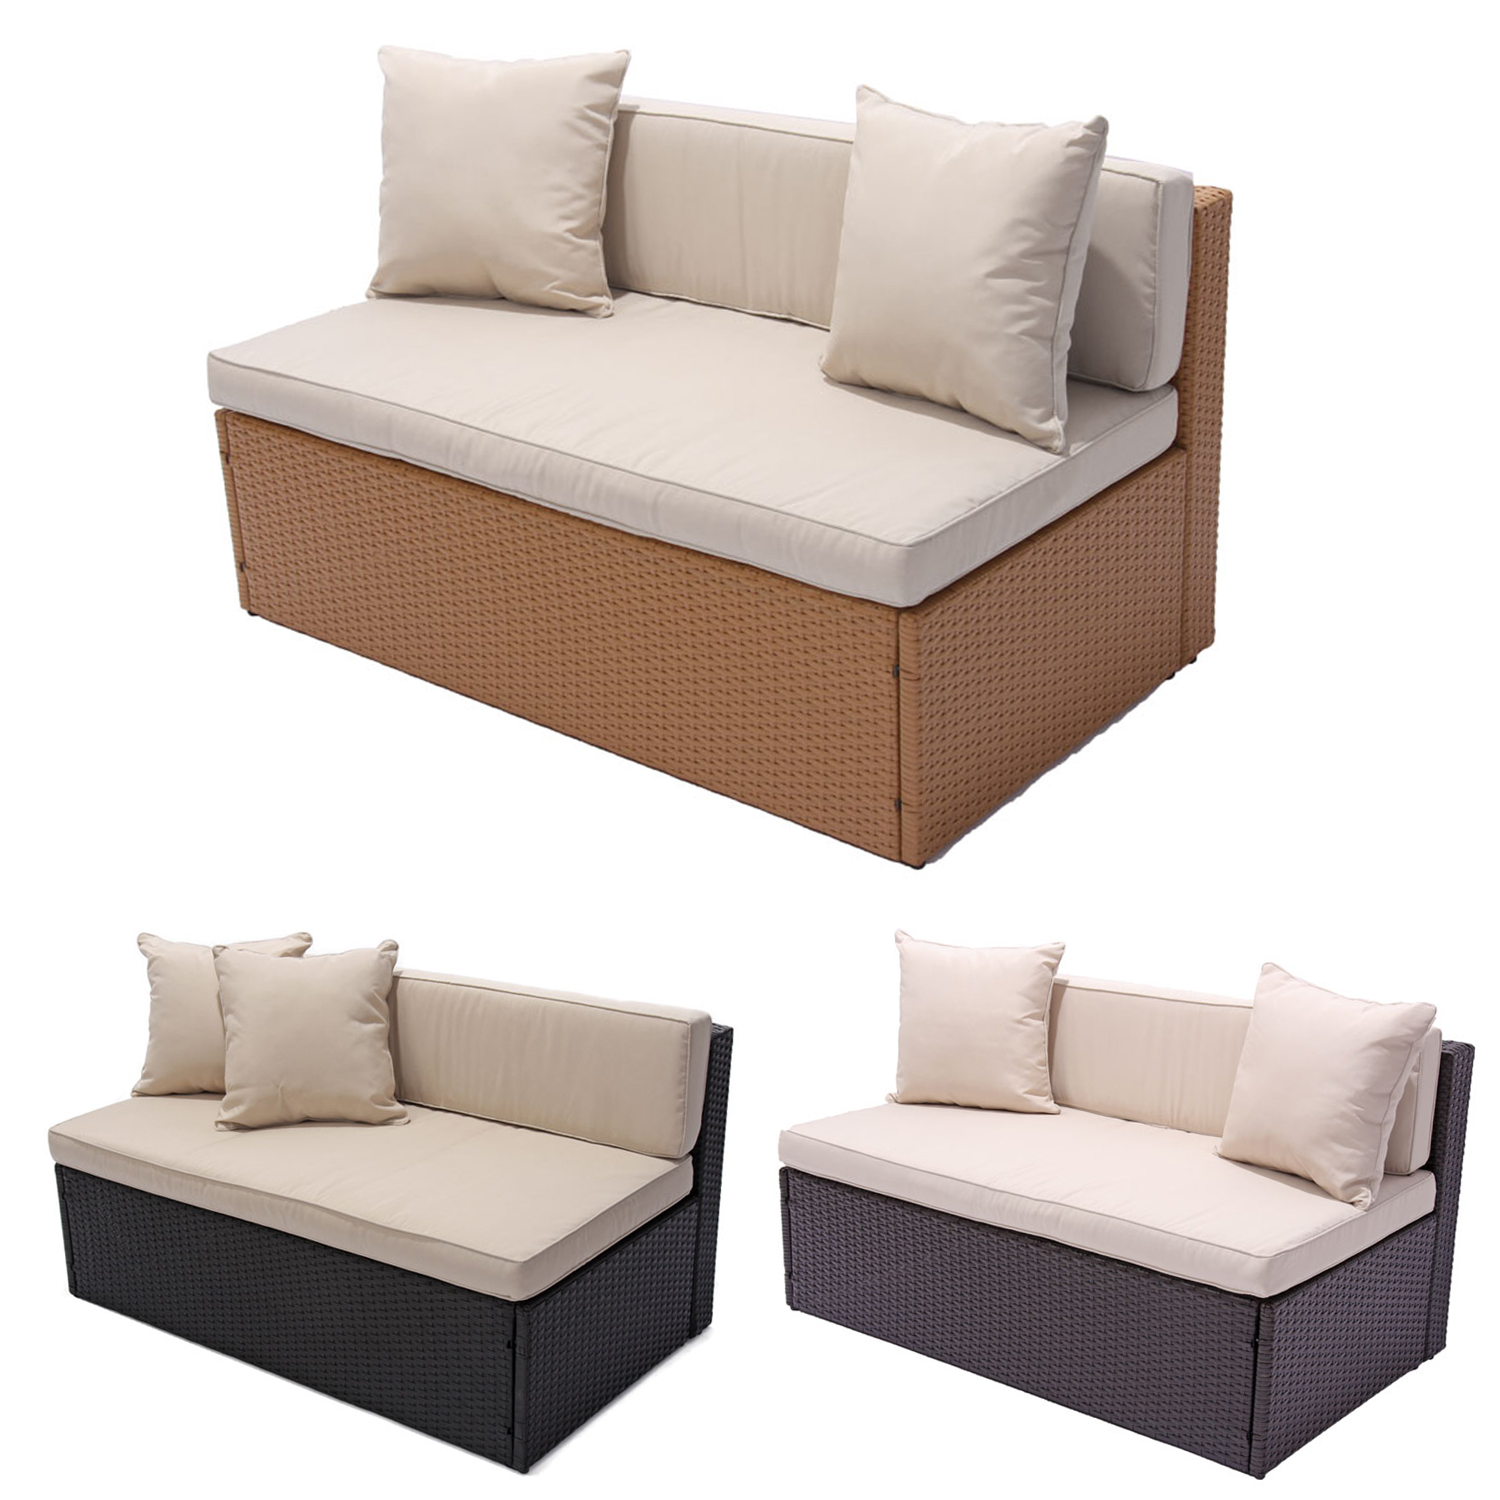 rattan couch balkon balkonm bel f r kleinen balkon 50 ideen balkon terrassensofa set rattan 3. Black Bedroom Furniture Sets. Home Design Ideas